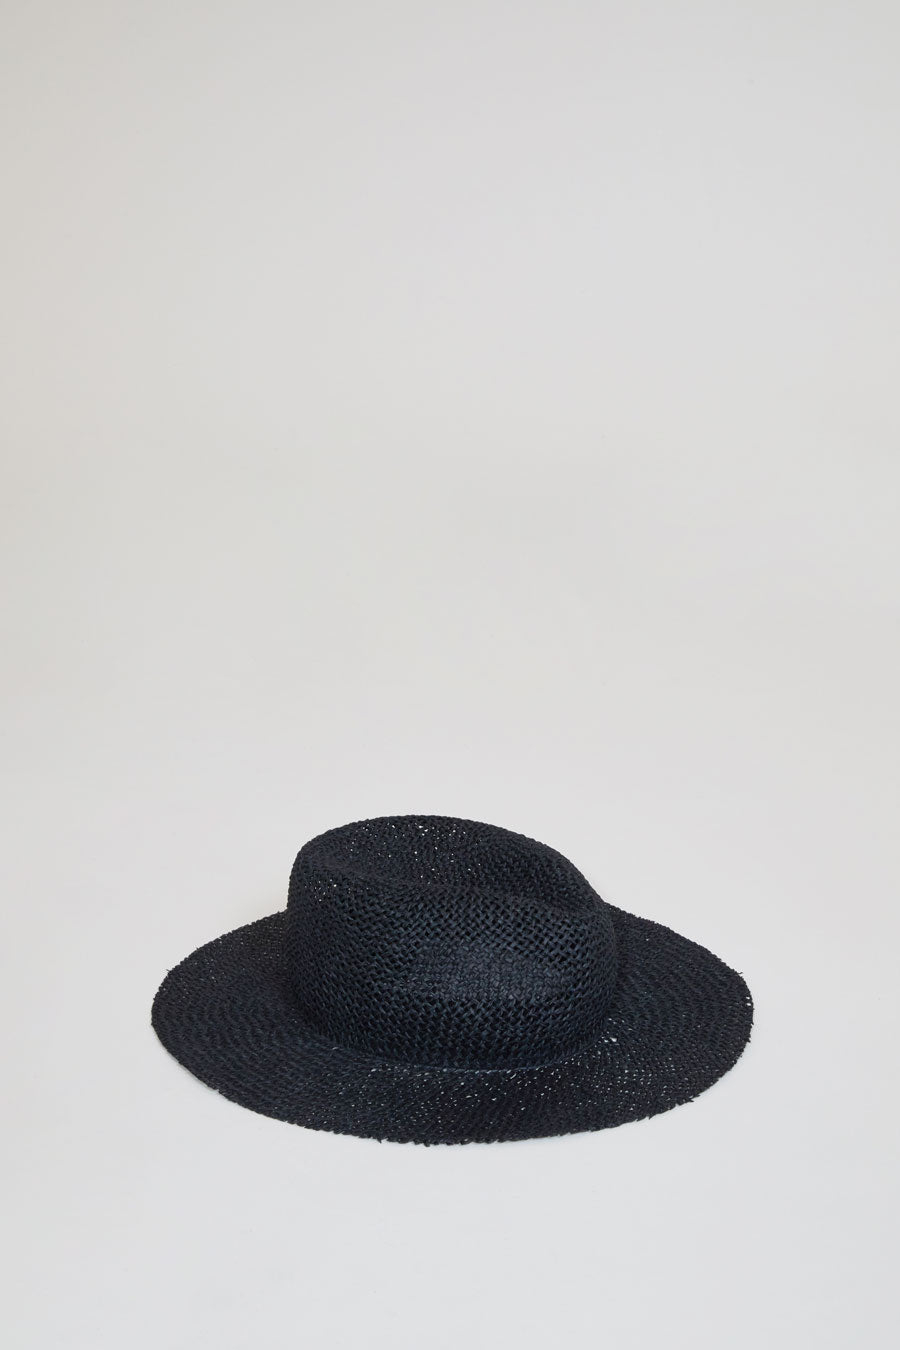 Muhlbauer Duke Rix Hat in Black